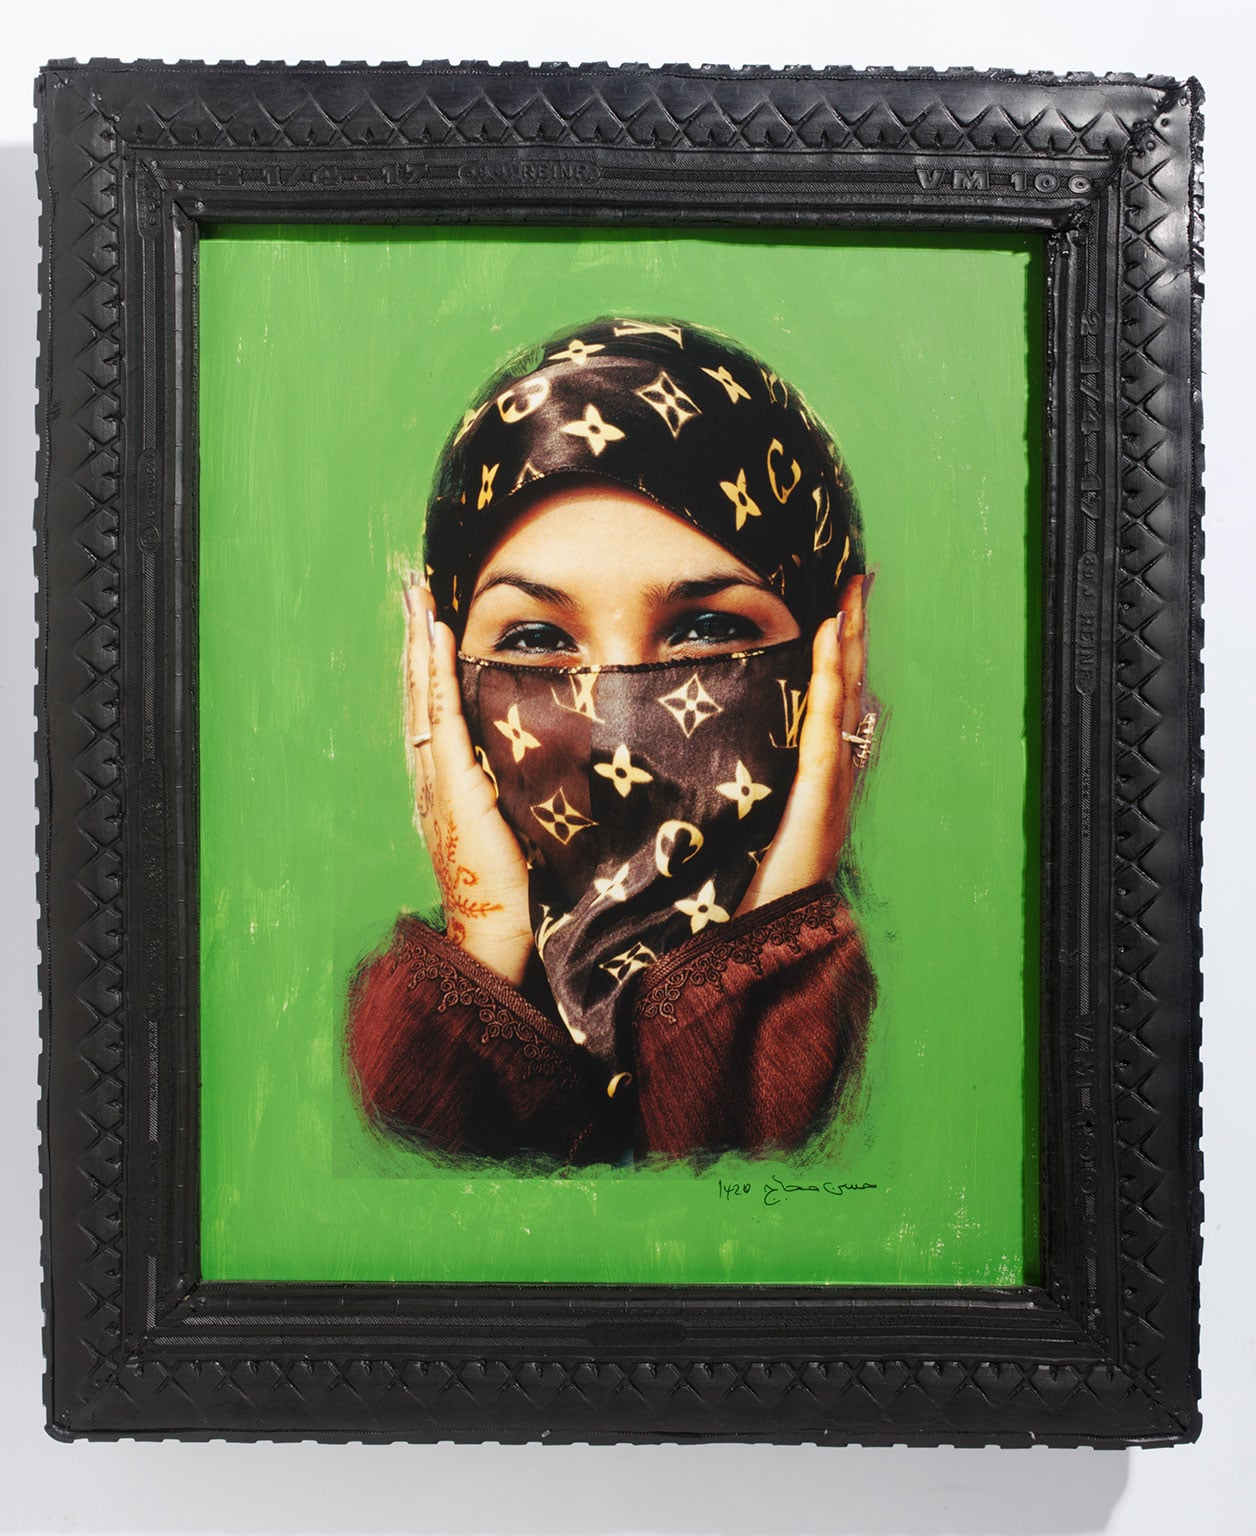 3. True to Life? New Photography from the Middle East, 7 June – 2 November 2014 - Birmingham Museum and Art Gallery. Free to all